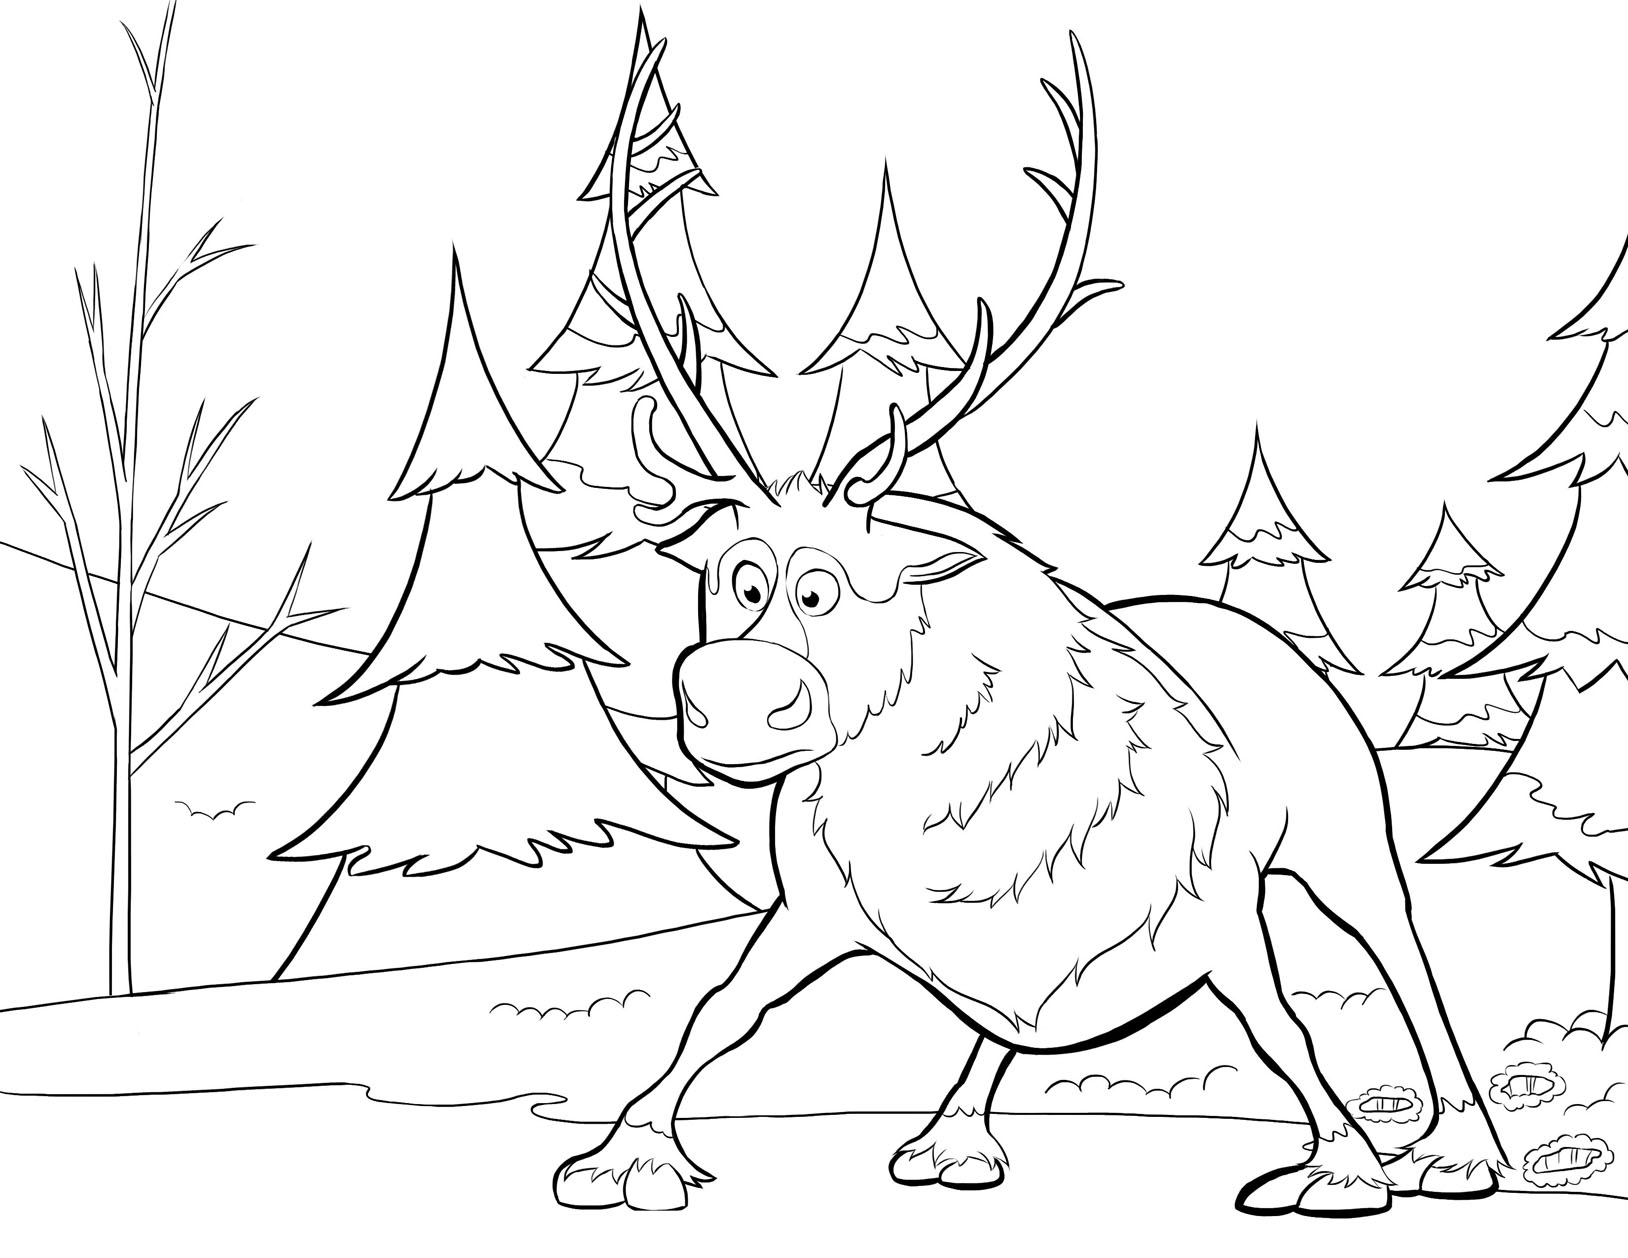 Kleurplaten Van Frozen.Frozen To Color For Kids Frozen Kids Coloring Pages